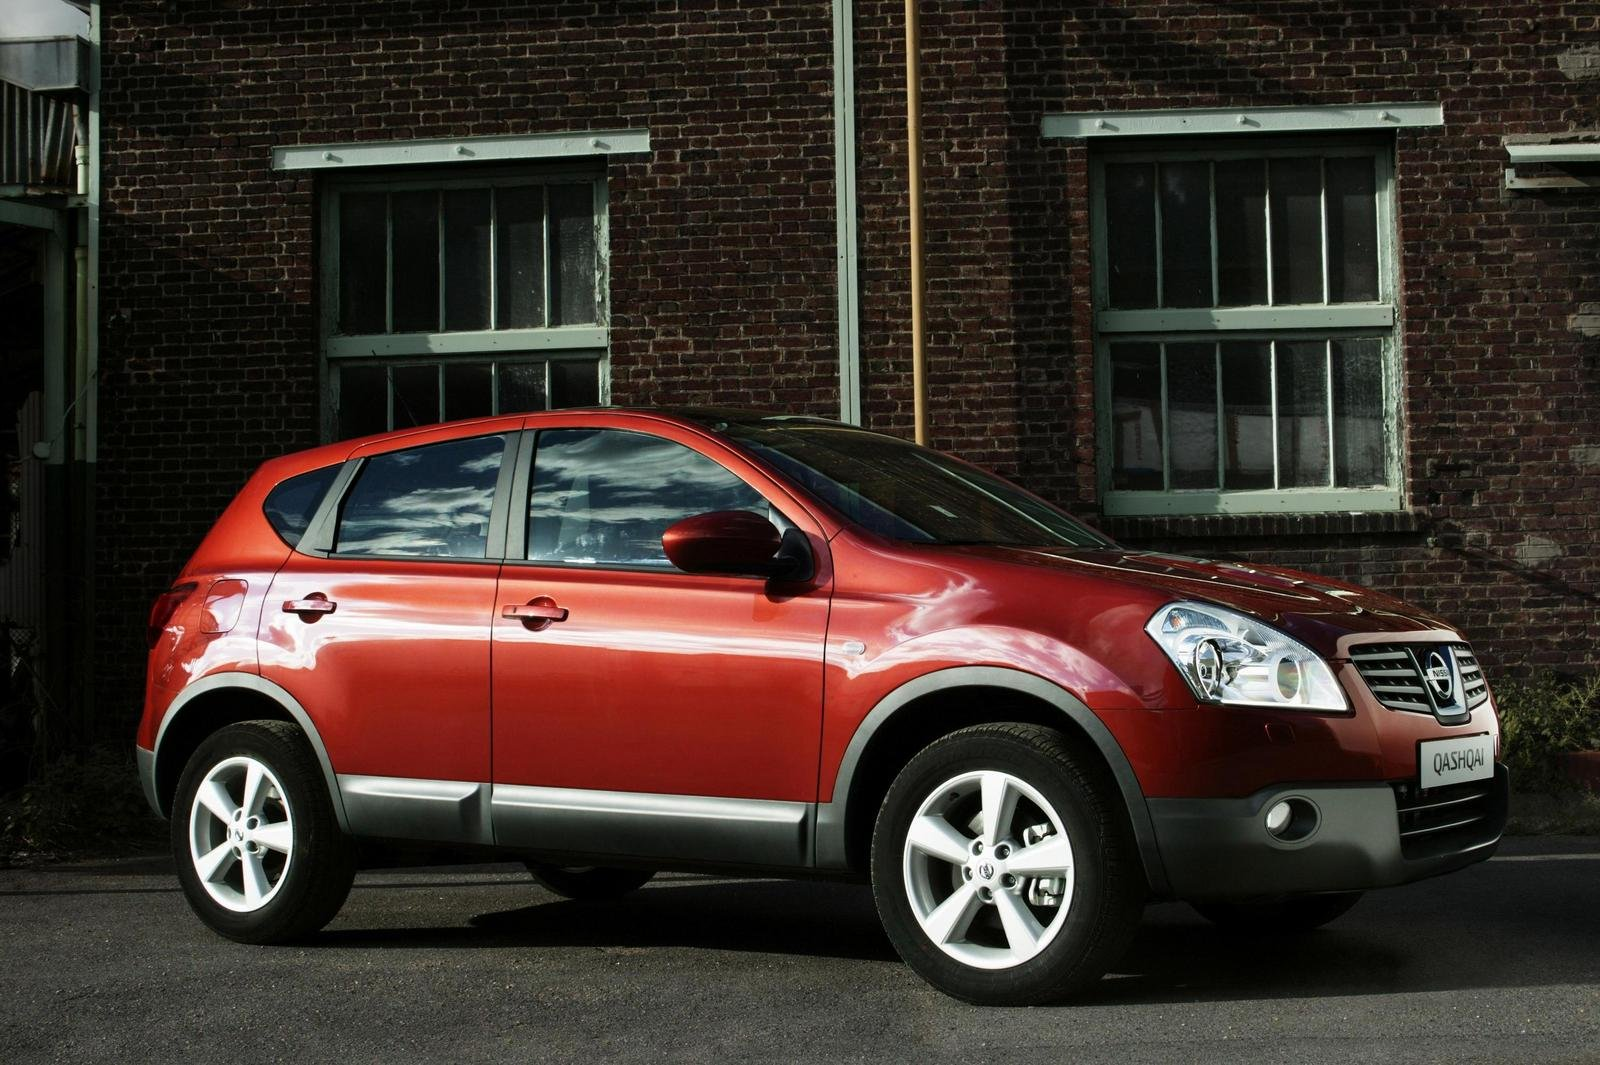 2007 nissan qashqai picture 144595 car review top speed. Black Bedroom Furniture Sets. Home Design Ideas